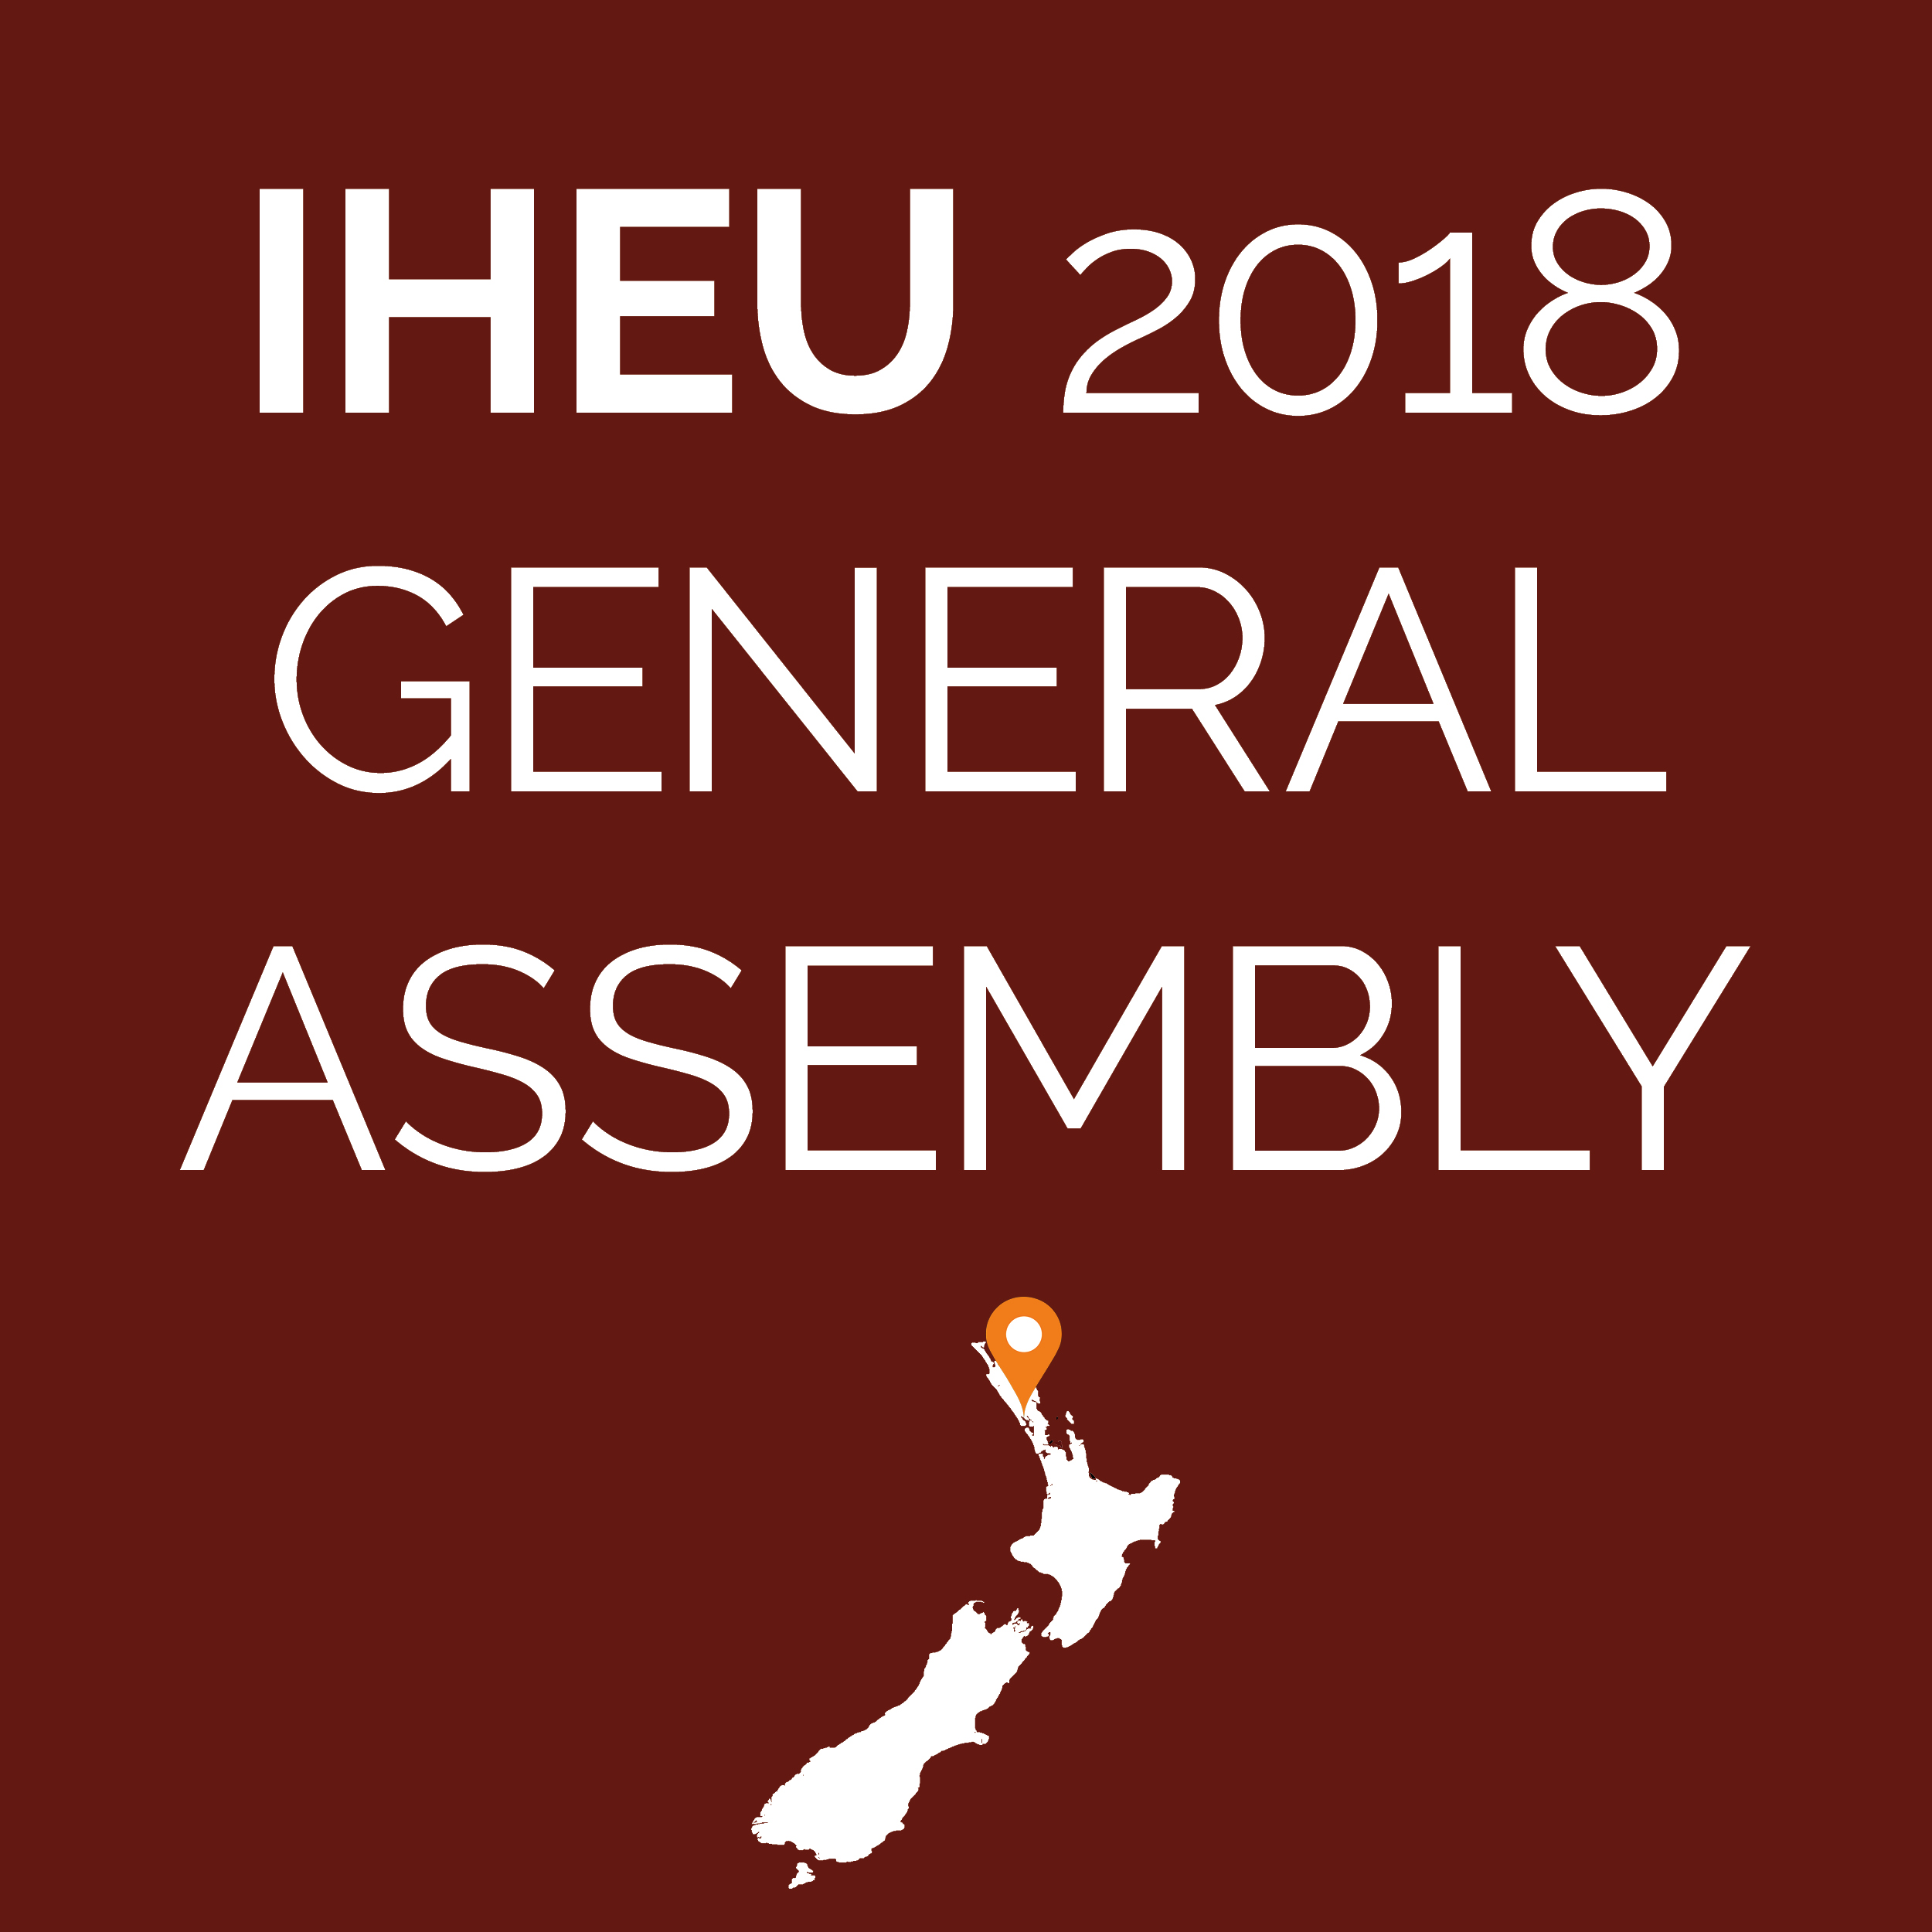 IHEU 2018 General Assembly